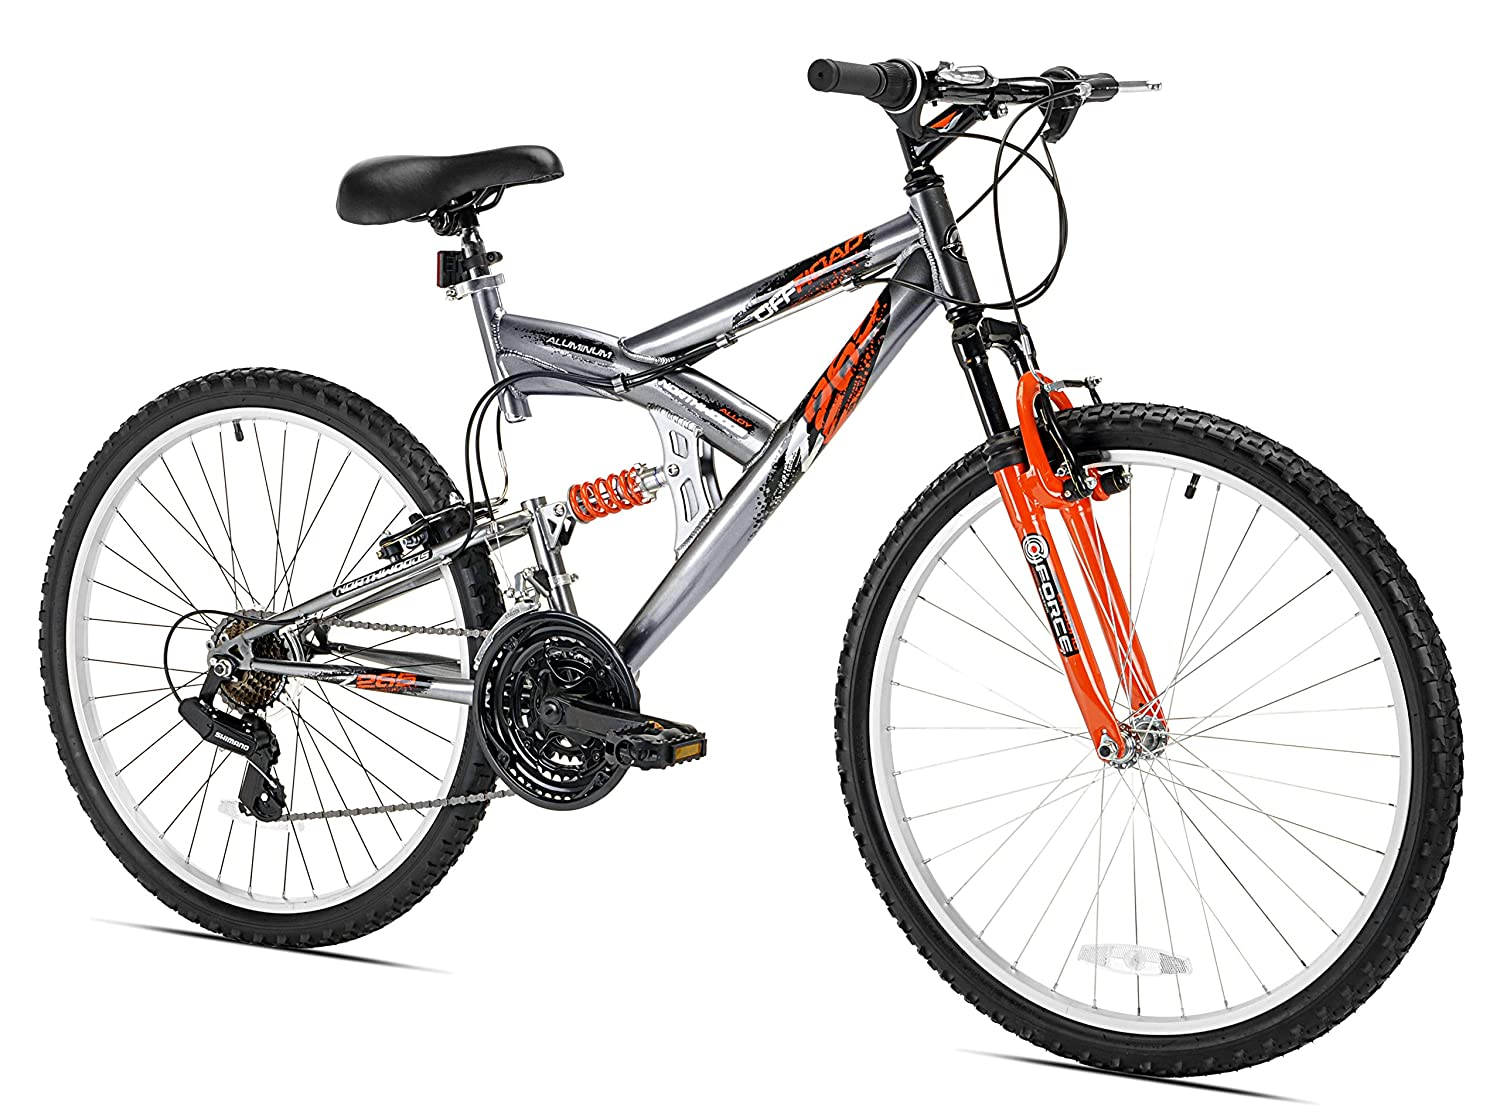 Top 10 Best Mountain Bikes (2020 Reviews & Buying Guide) 8